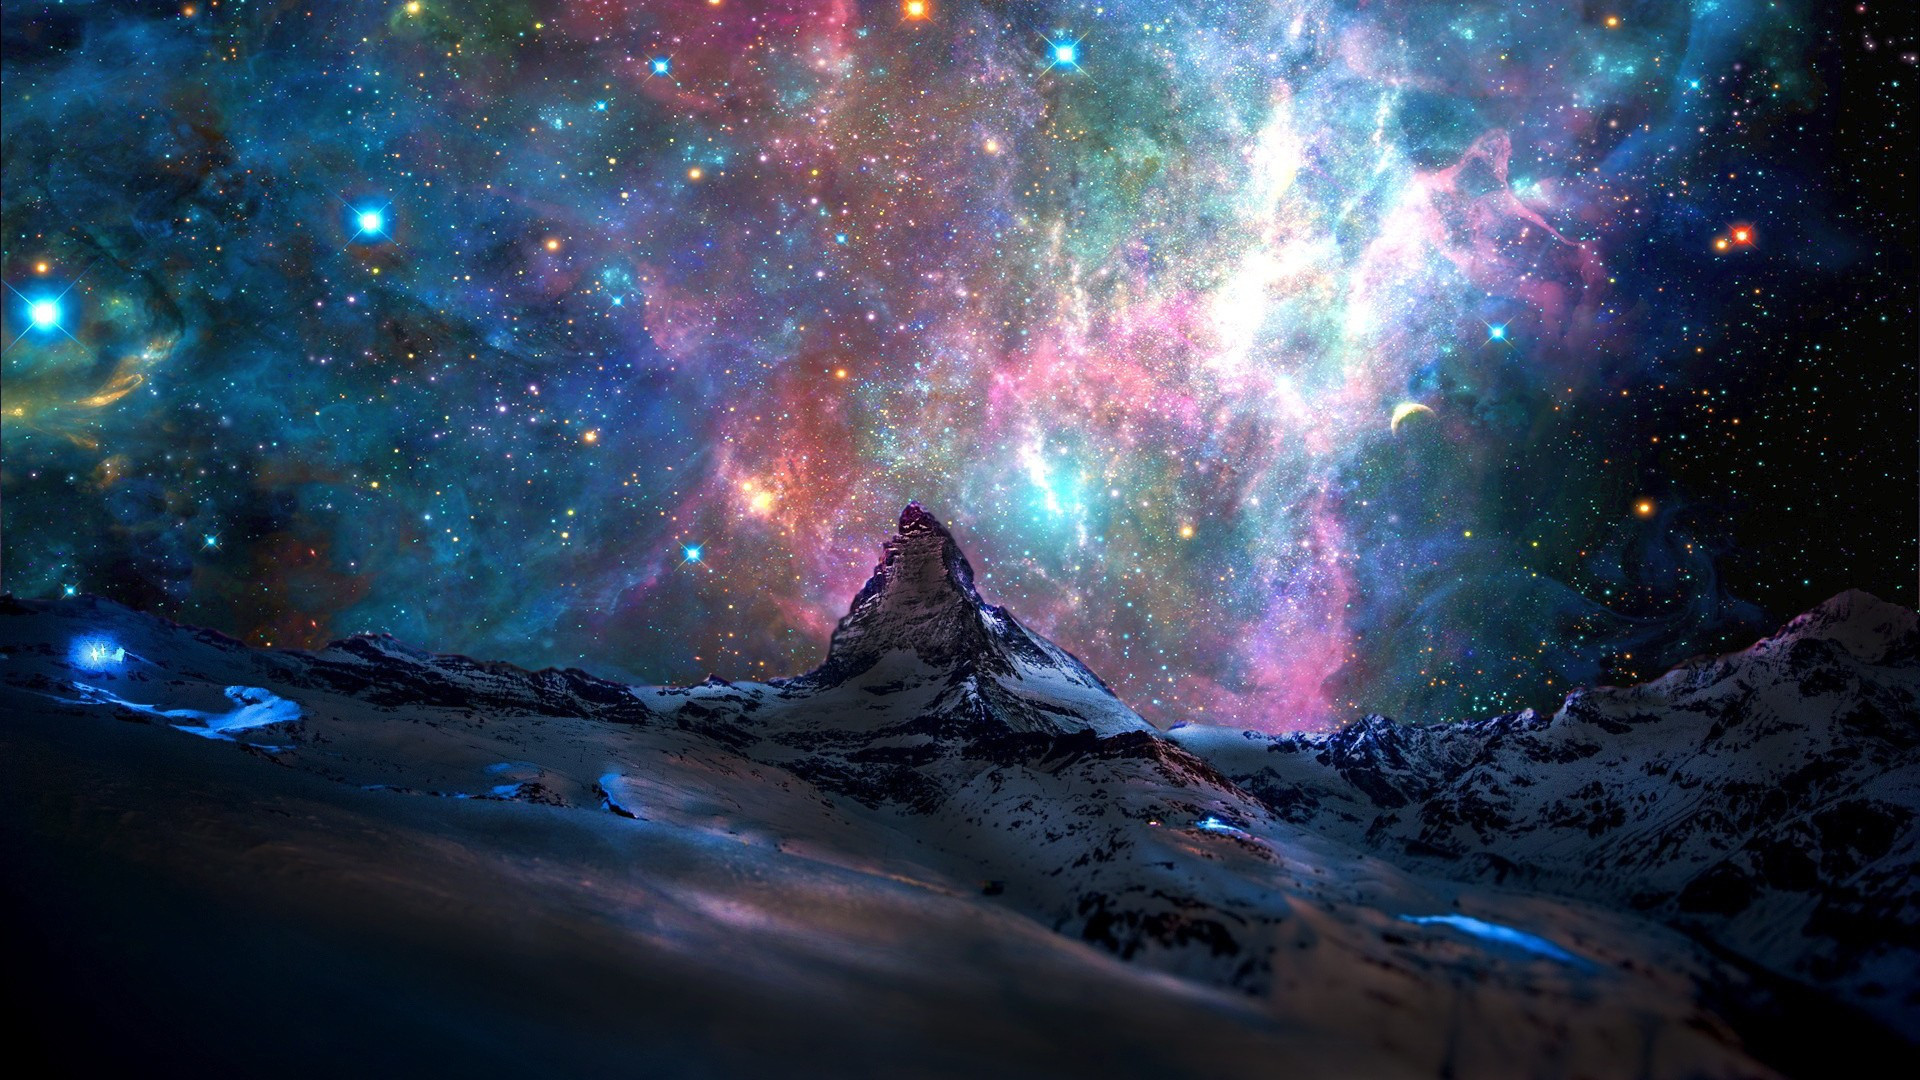 10 Latest Cool Laptop Backgrounds Space Full Hd 1920 1080